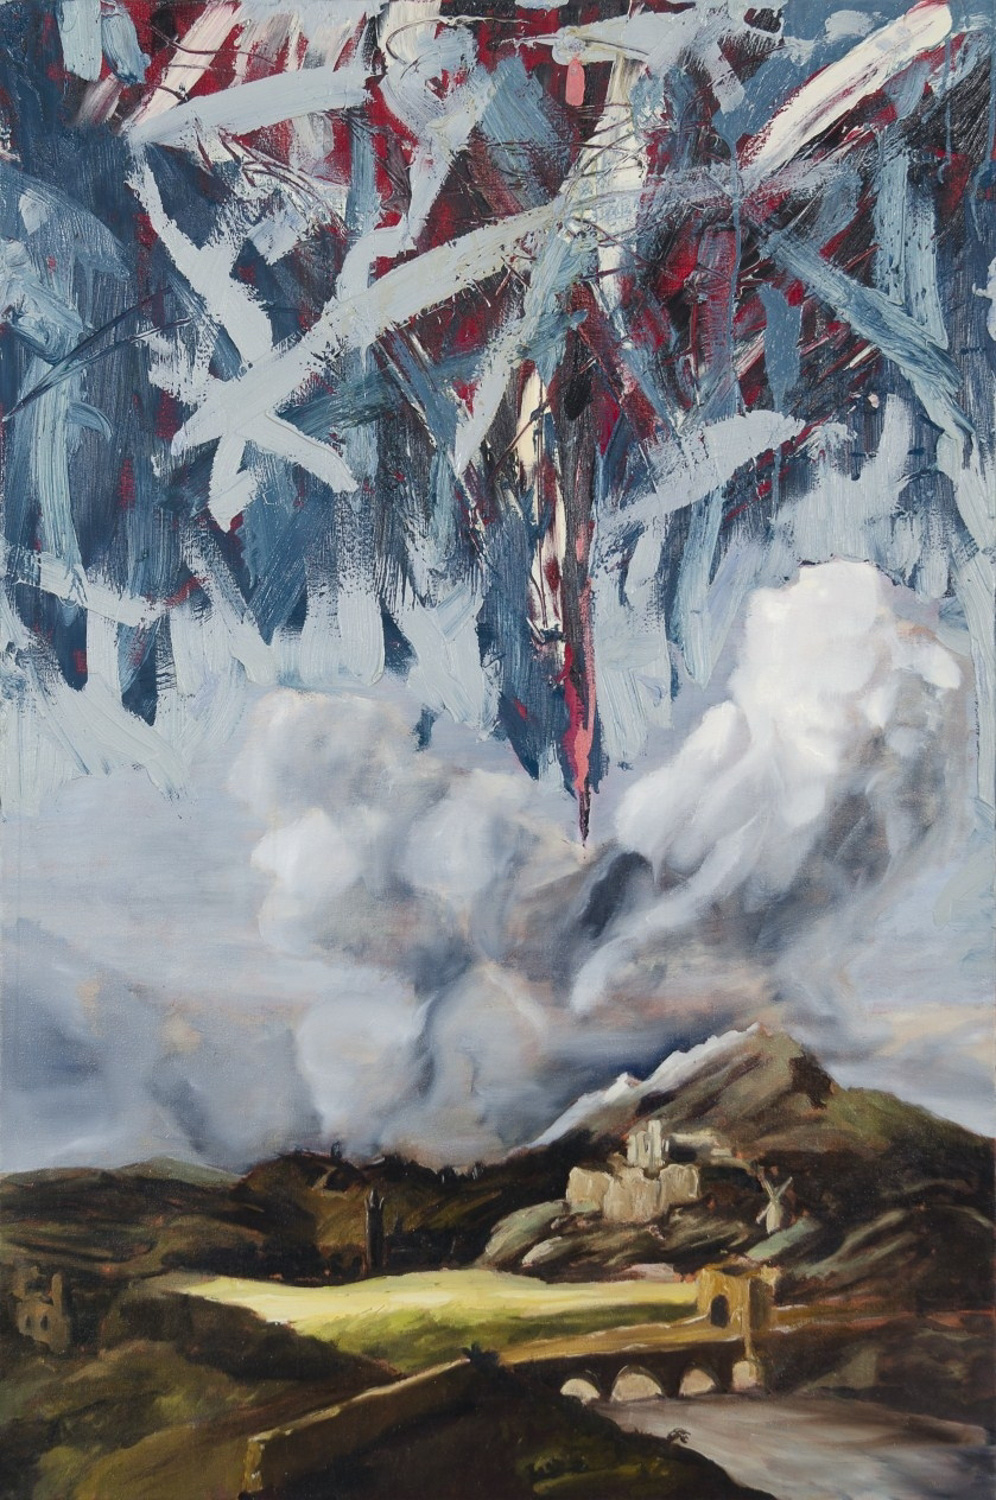 Heaven Emasculated, Oil on canvas, 160x100 cm, 2012